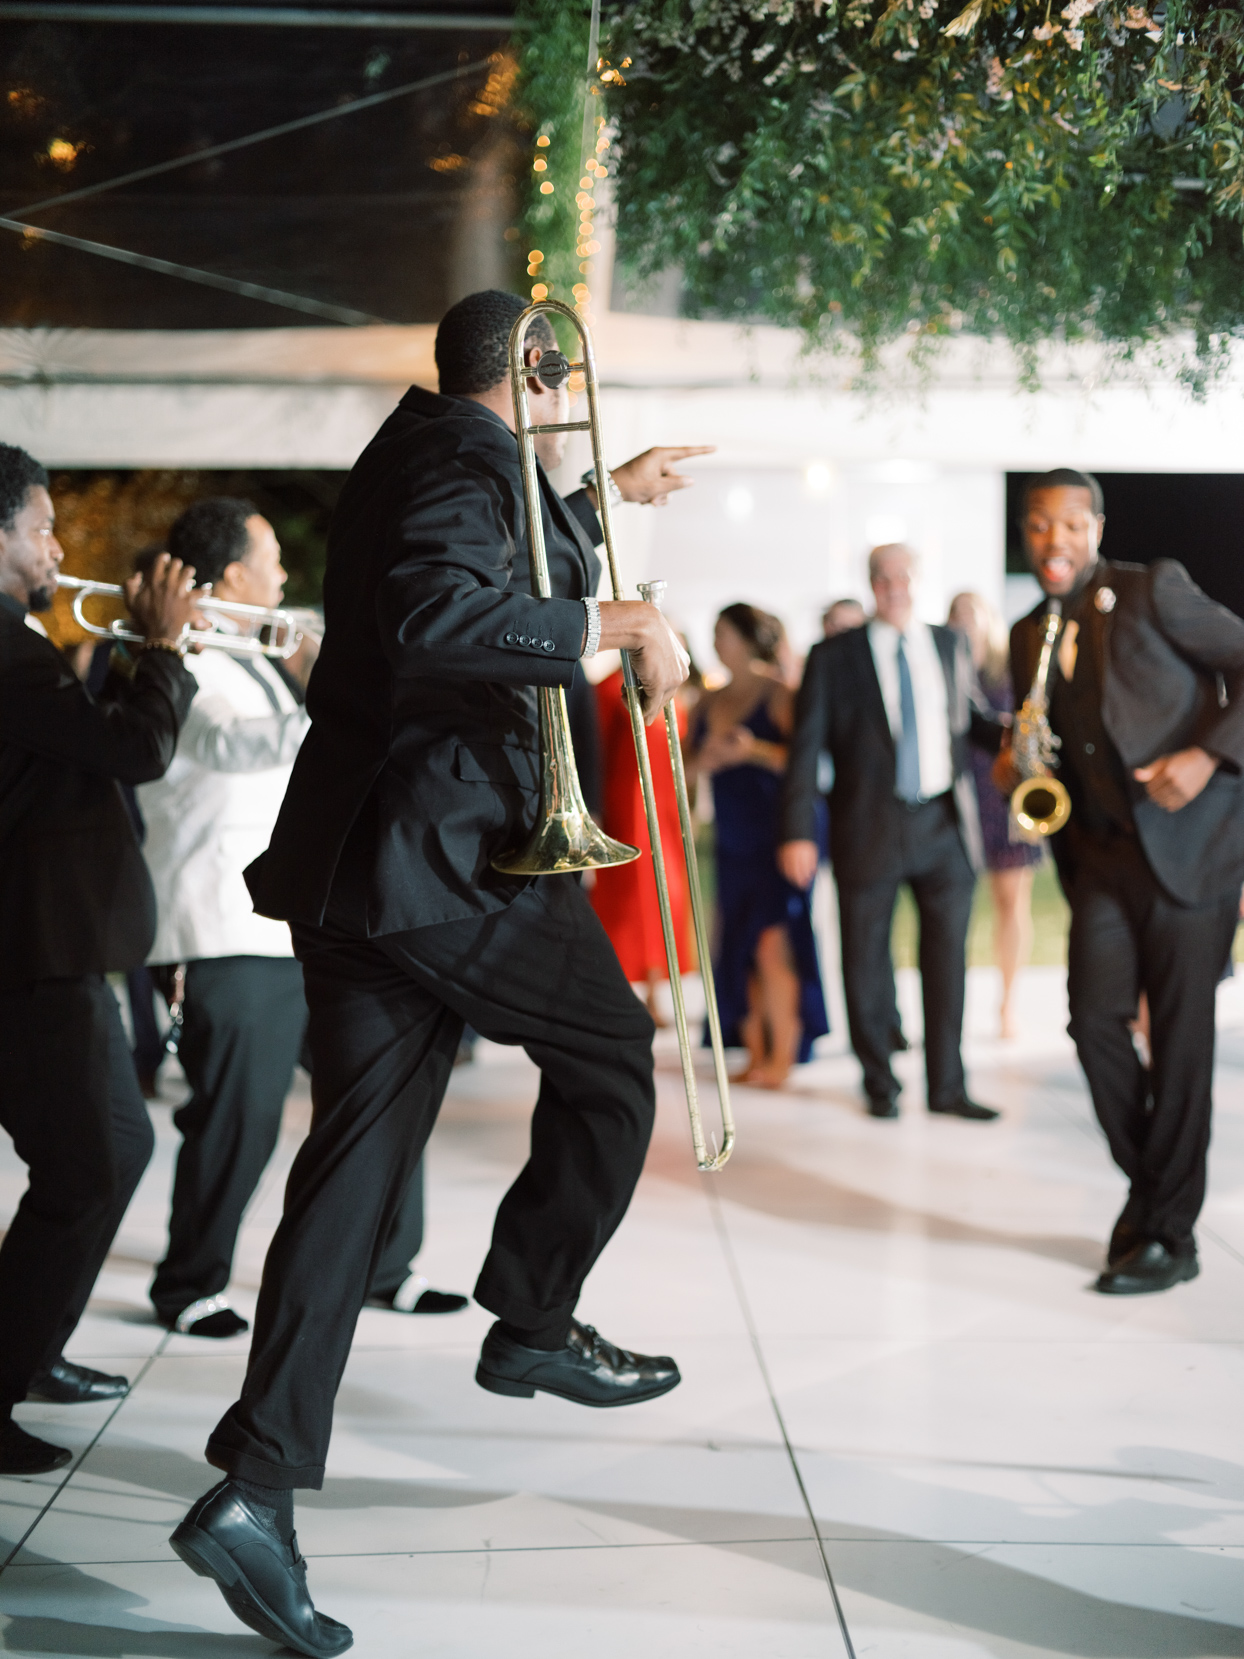 wedding musicians dancing with brass instruments at reception